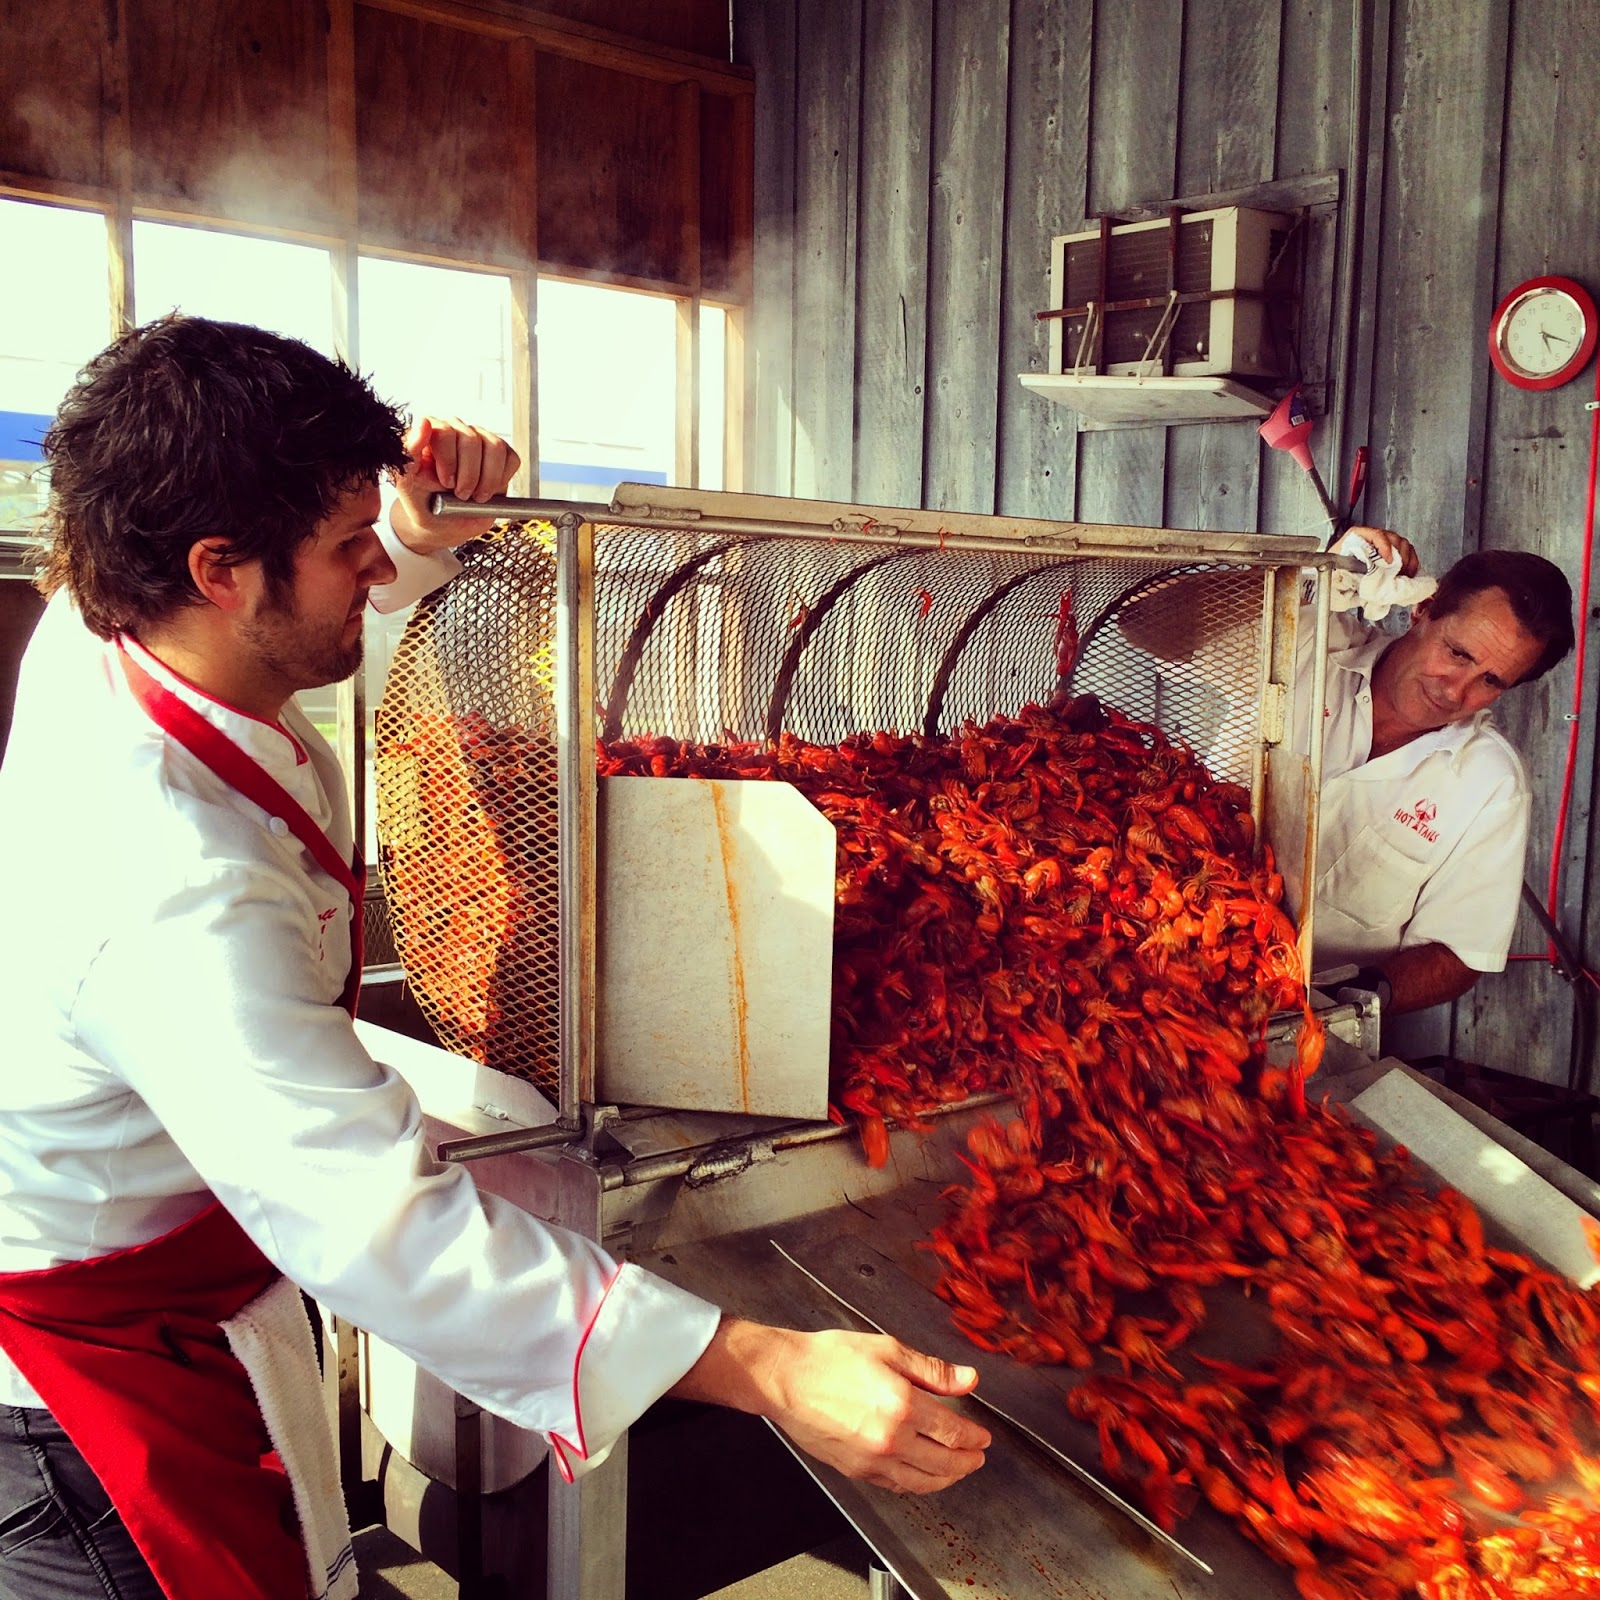 I caught Chef Cory Carroll (left) pulling out a fresh batch  of his famous boiled crawfish.